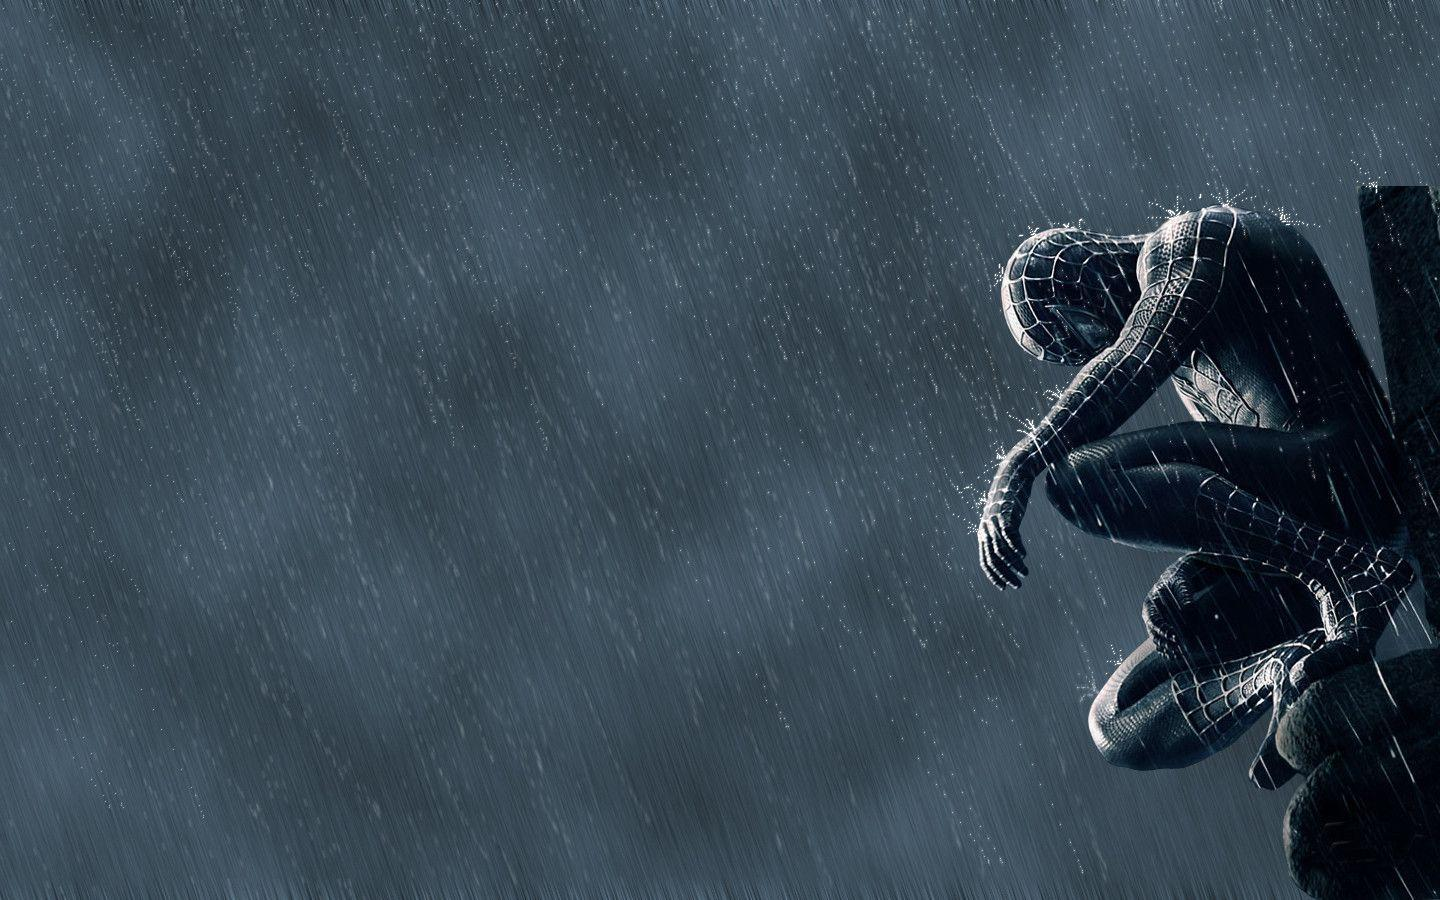 Spiderman Wallpapers Galaxy Note Wallpapers